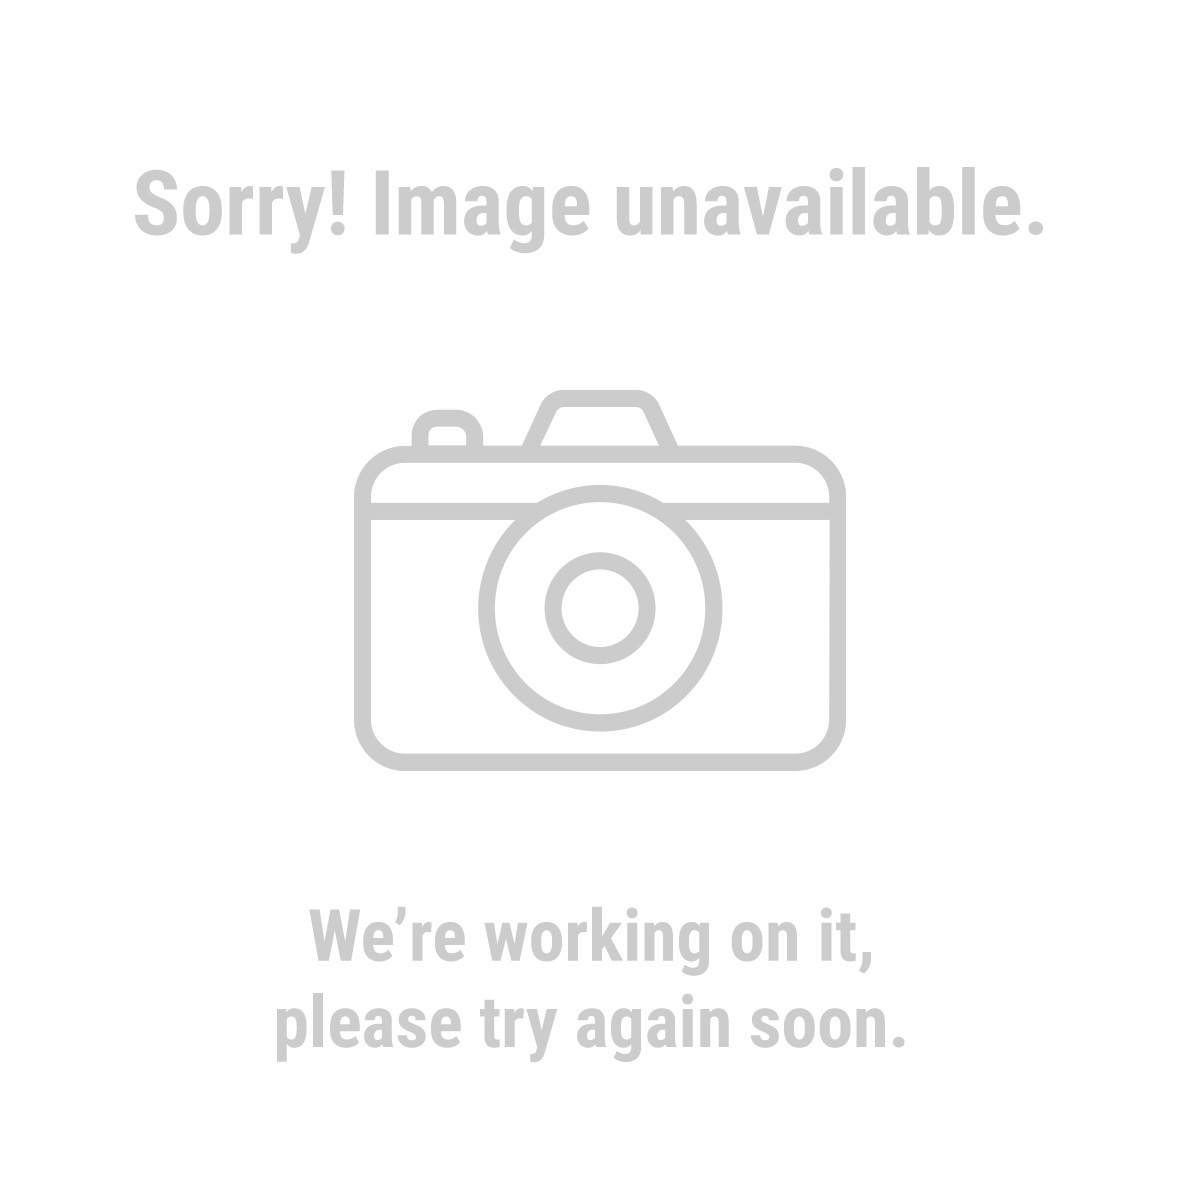 Warrior® 62475 6 in. General Purpose Bench Grinding Wheel